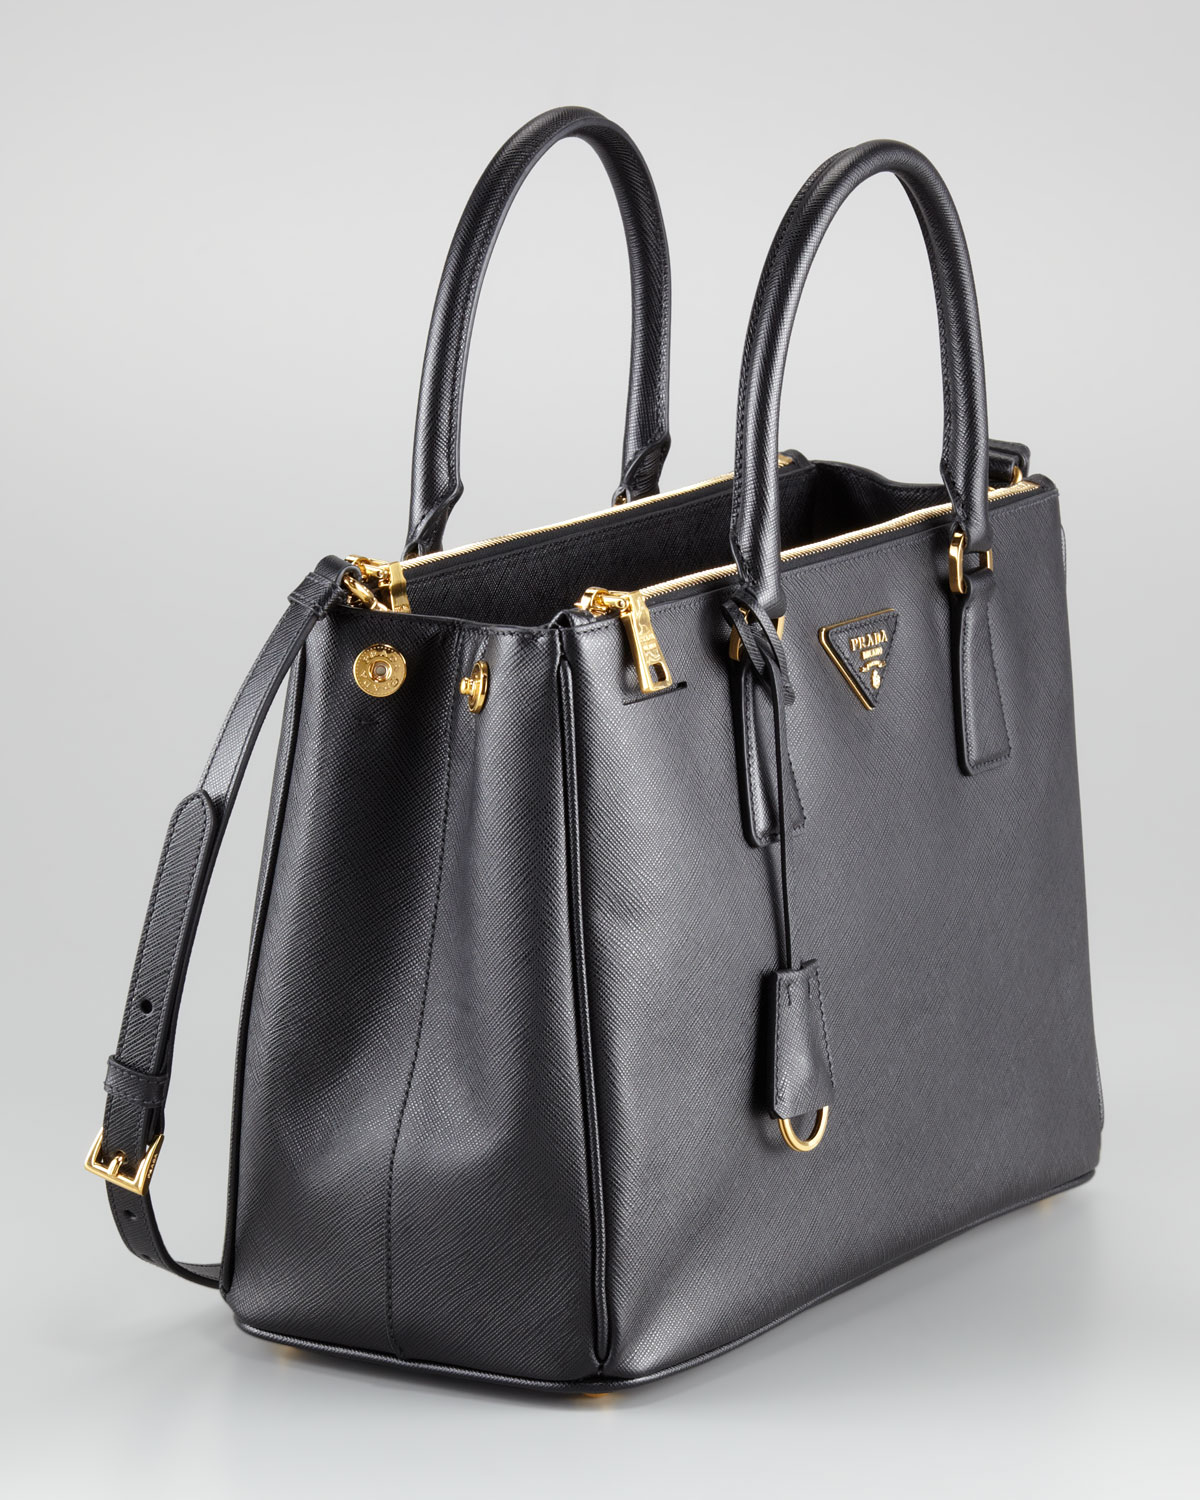 b3ba20ca47a7 Lyst - Prada Saffiano Small Executive Tote in Black